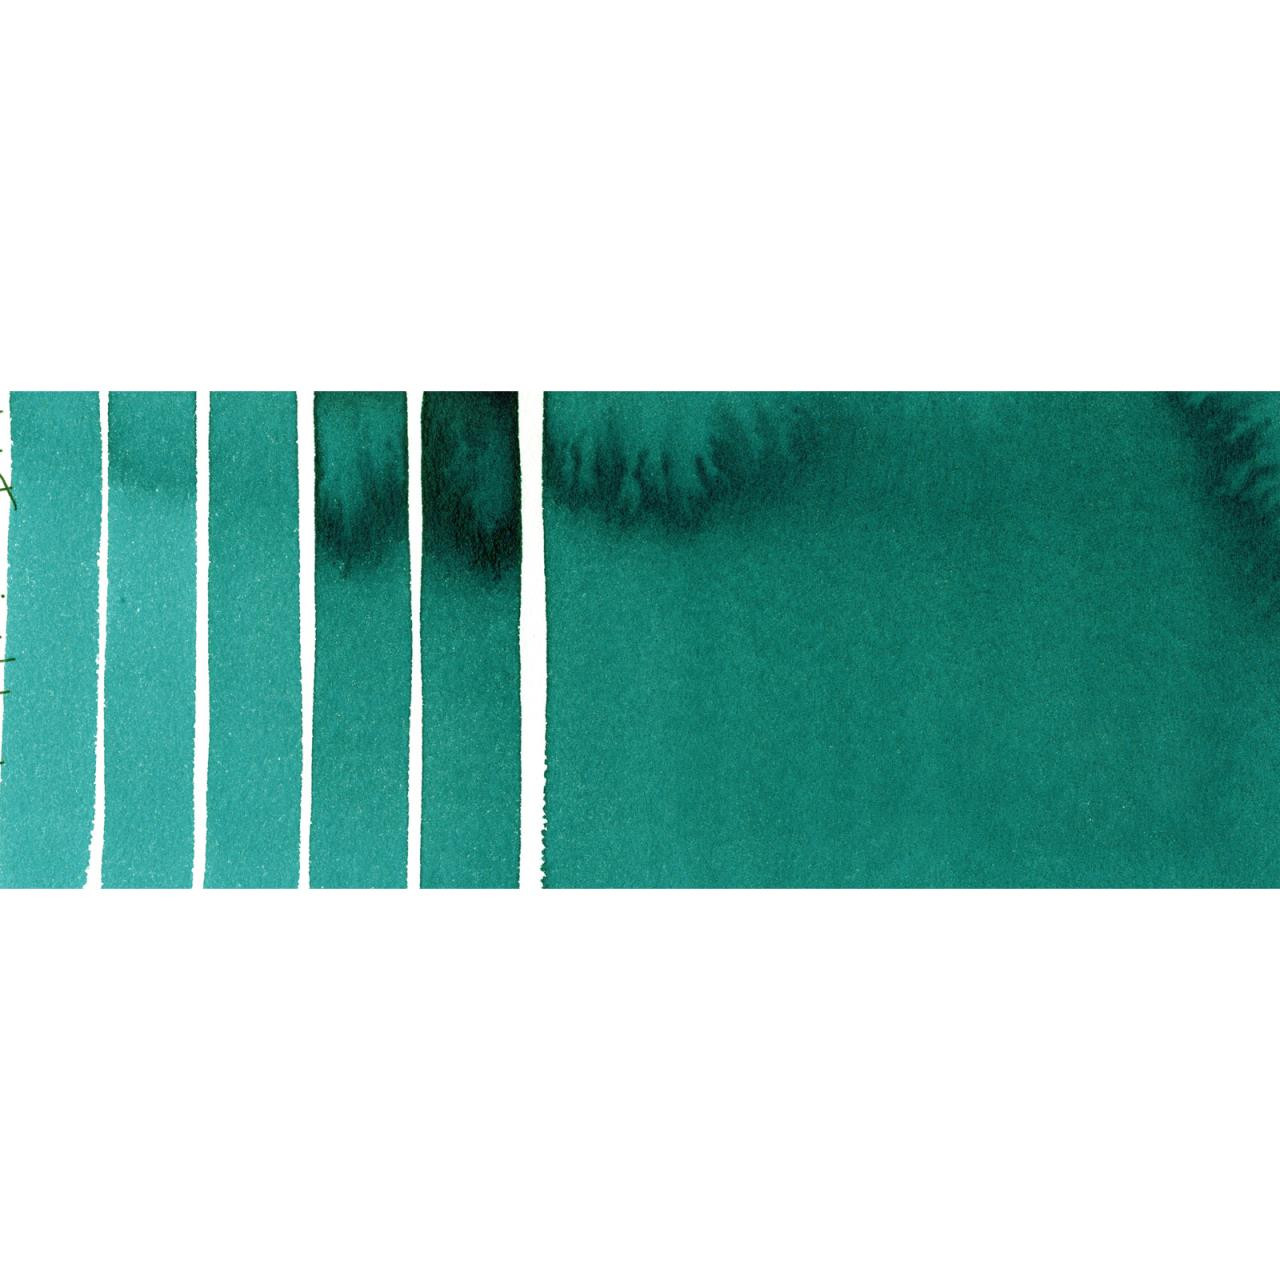 Phthalo Turquoise, DANIEL SMITH Extra Fine Watercolors 5ml Tubes -